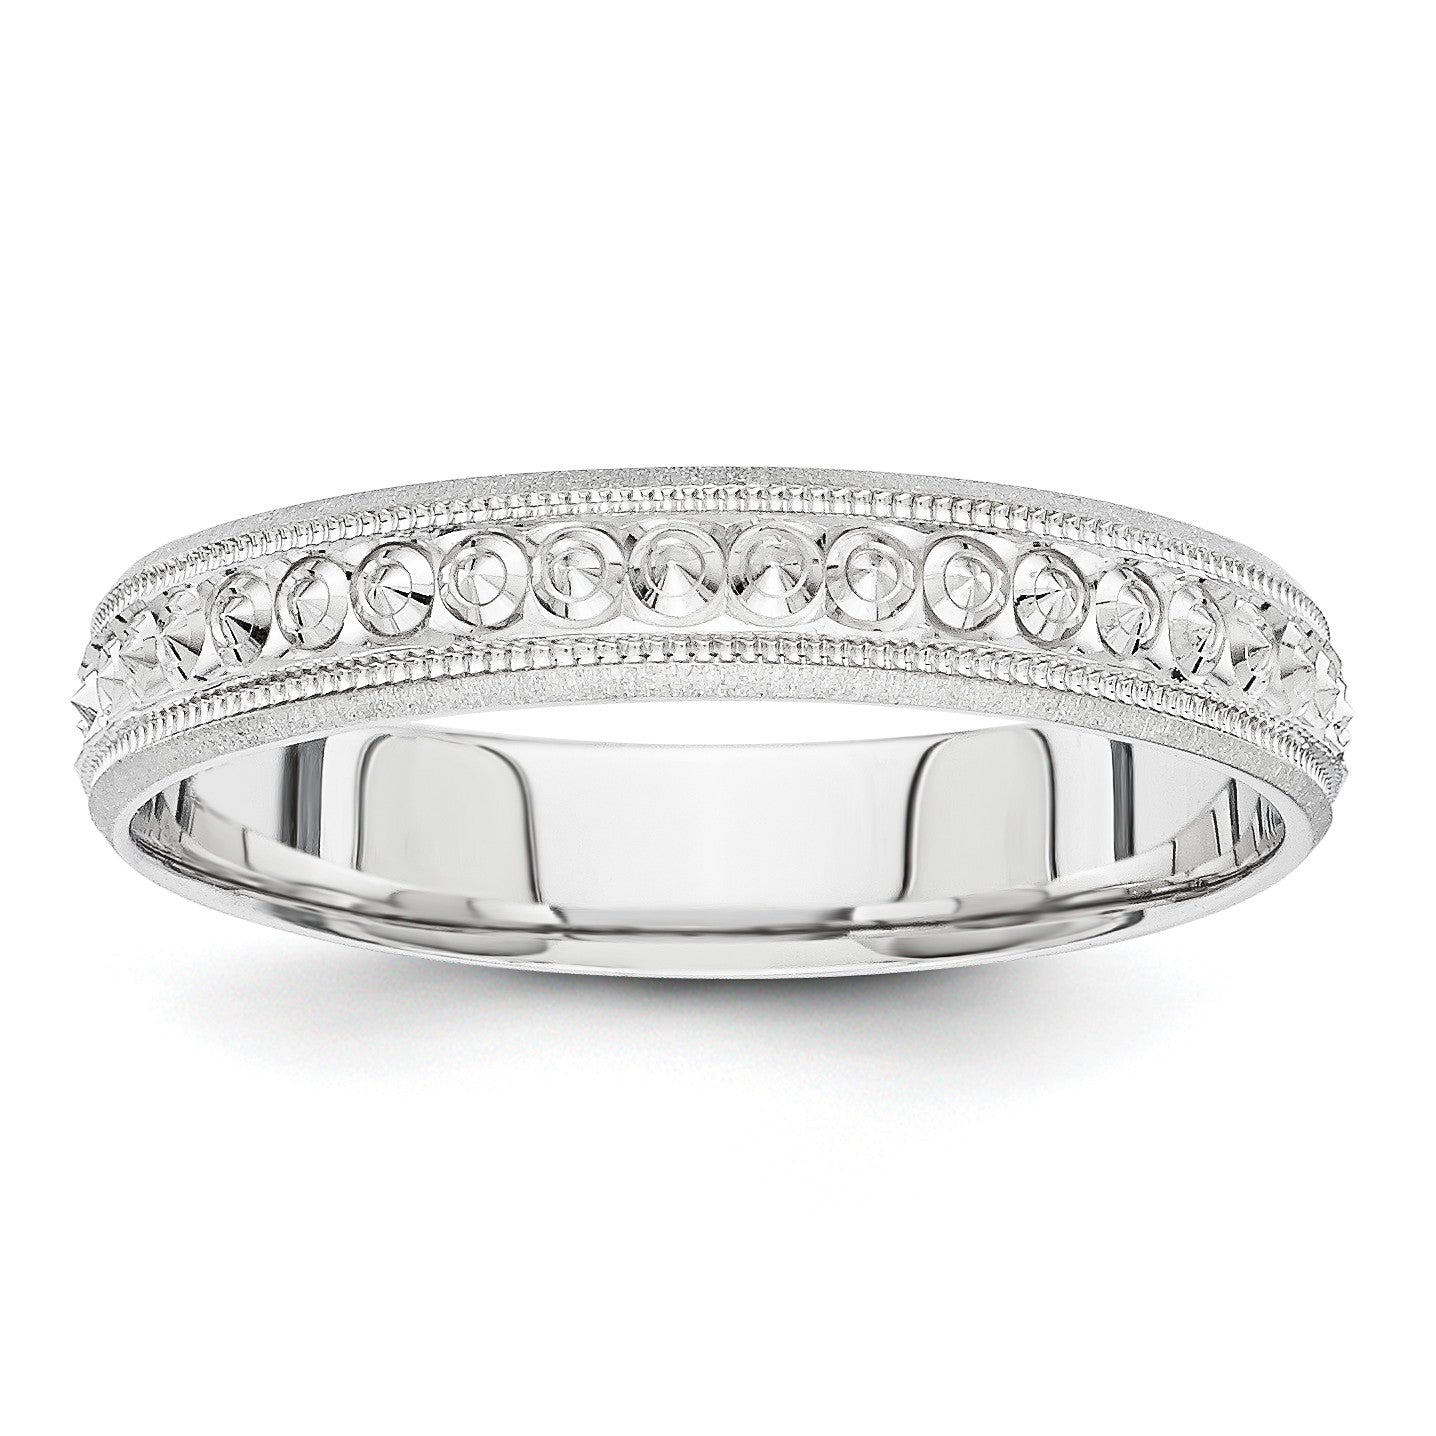 14K White Gold 3mm Design Etched Wedding Band XWB250 - shirin-diamonds